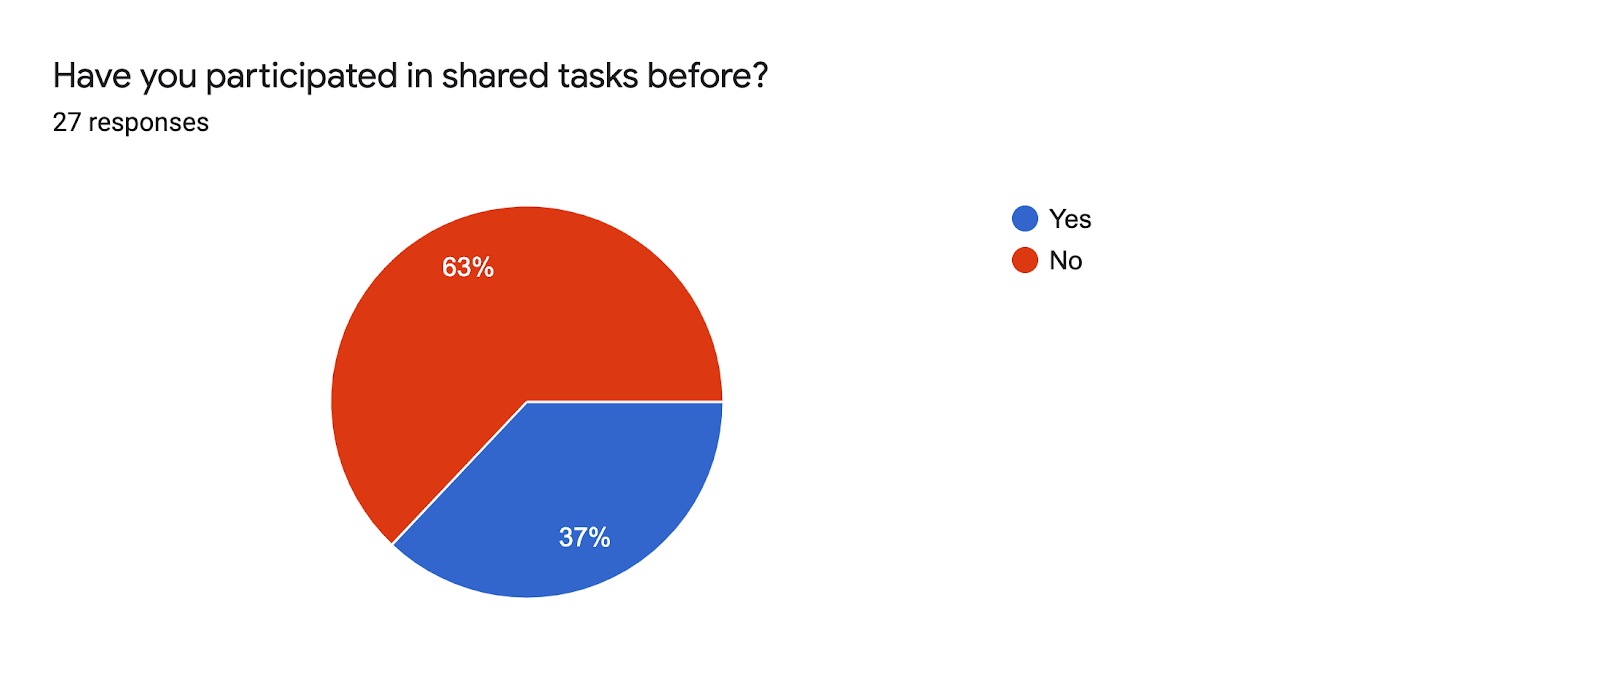 Forms response chart. Question title: Have you participated in shared tasks before?. Number of responses: 27 responses.